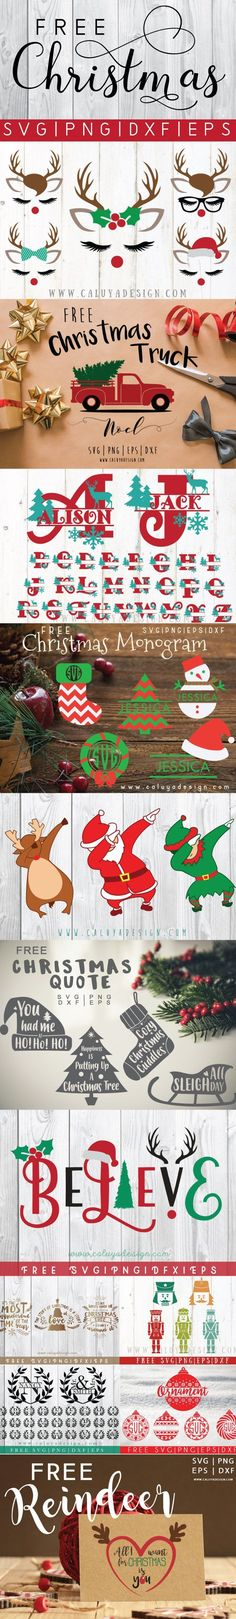 Free Christmas SVG files for Cricut projects